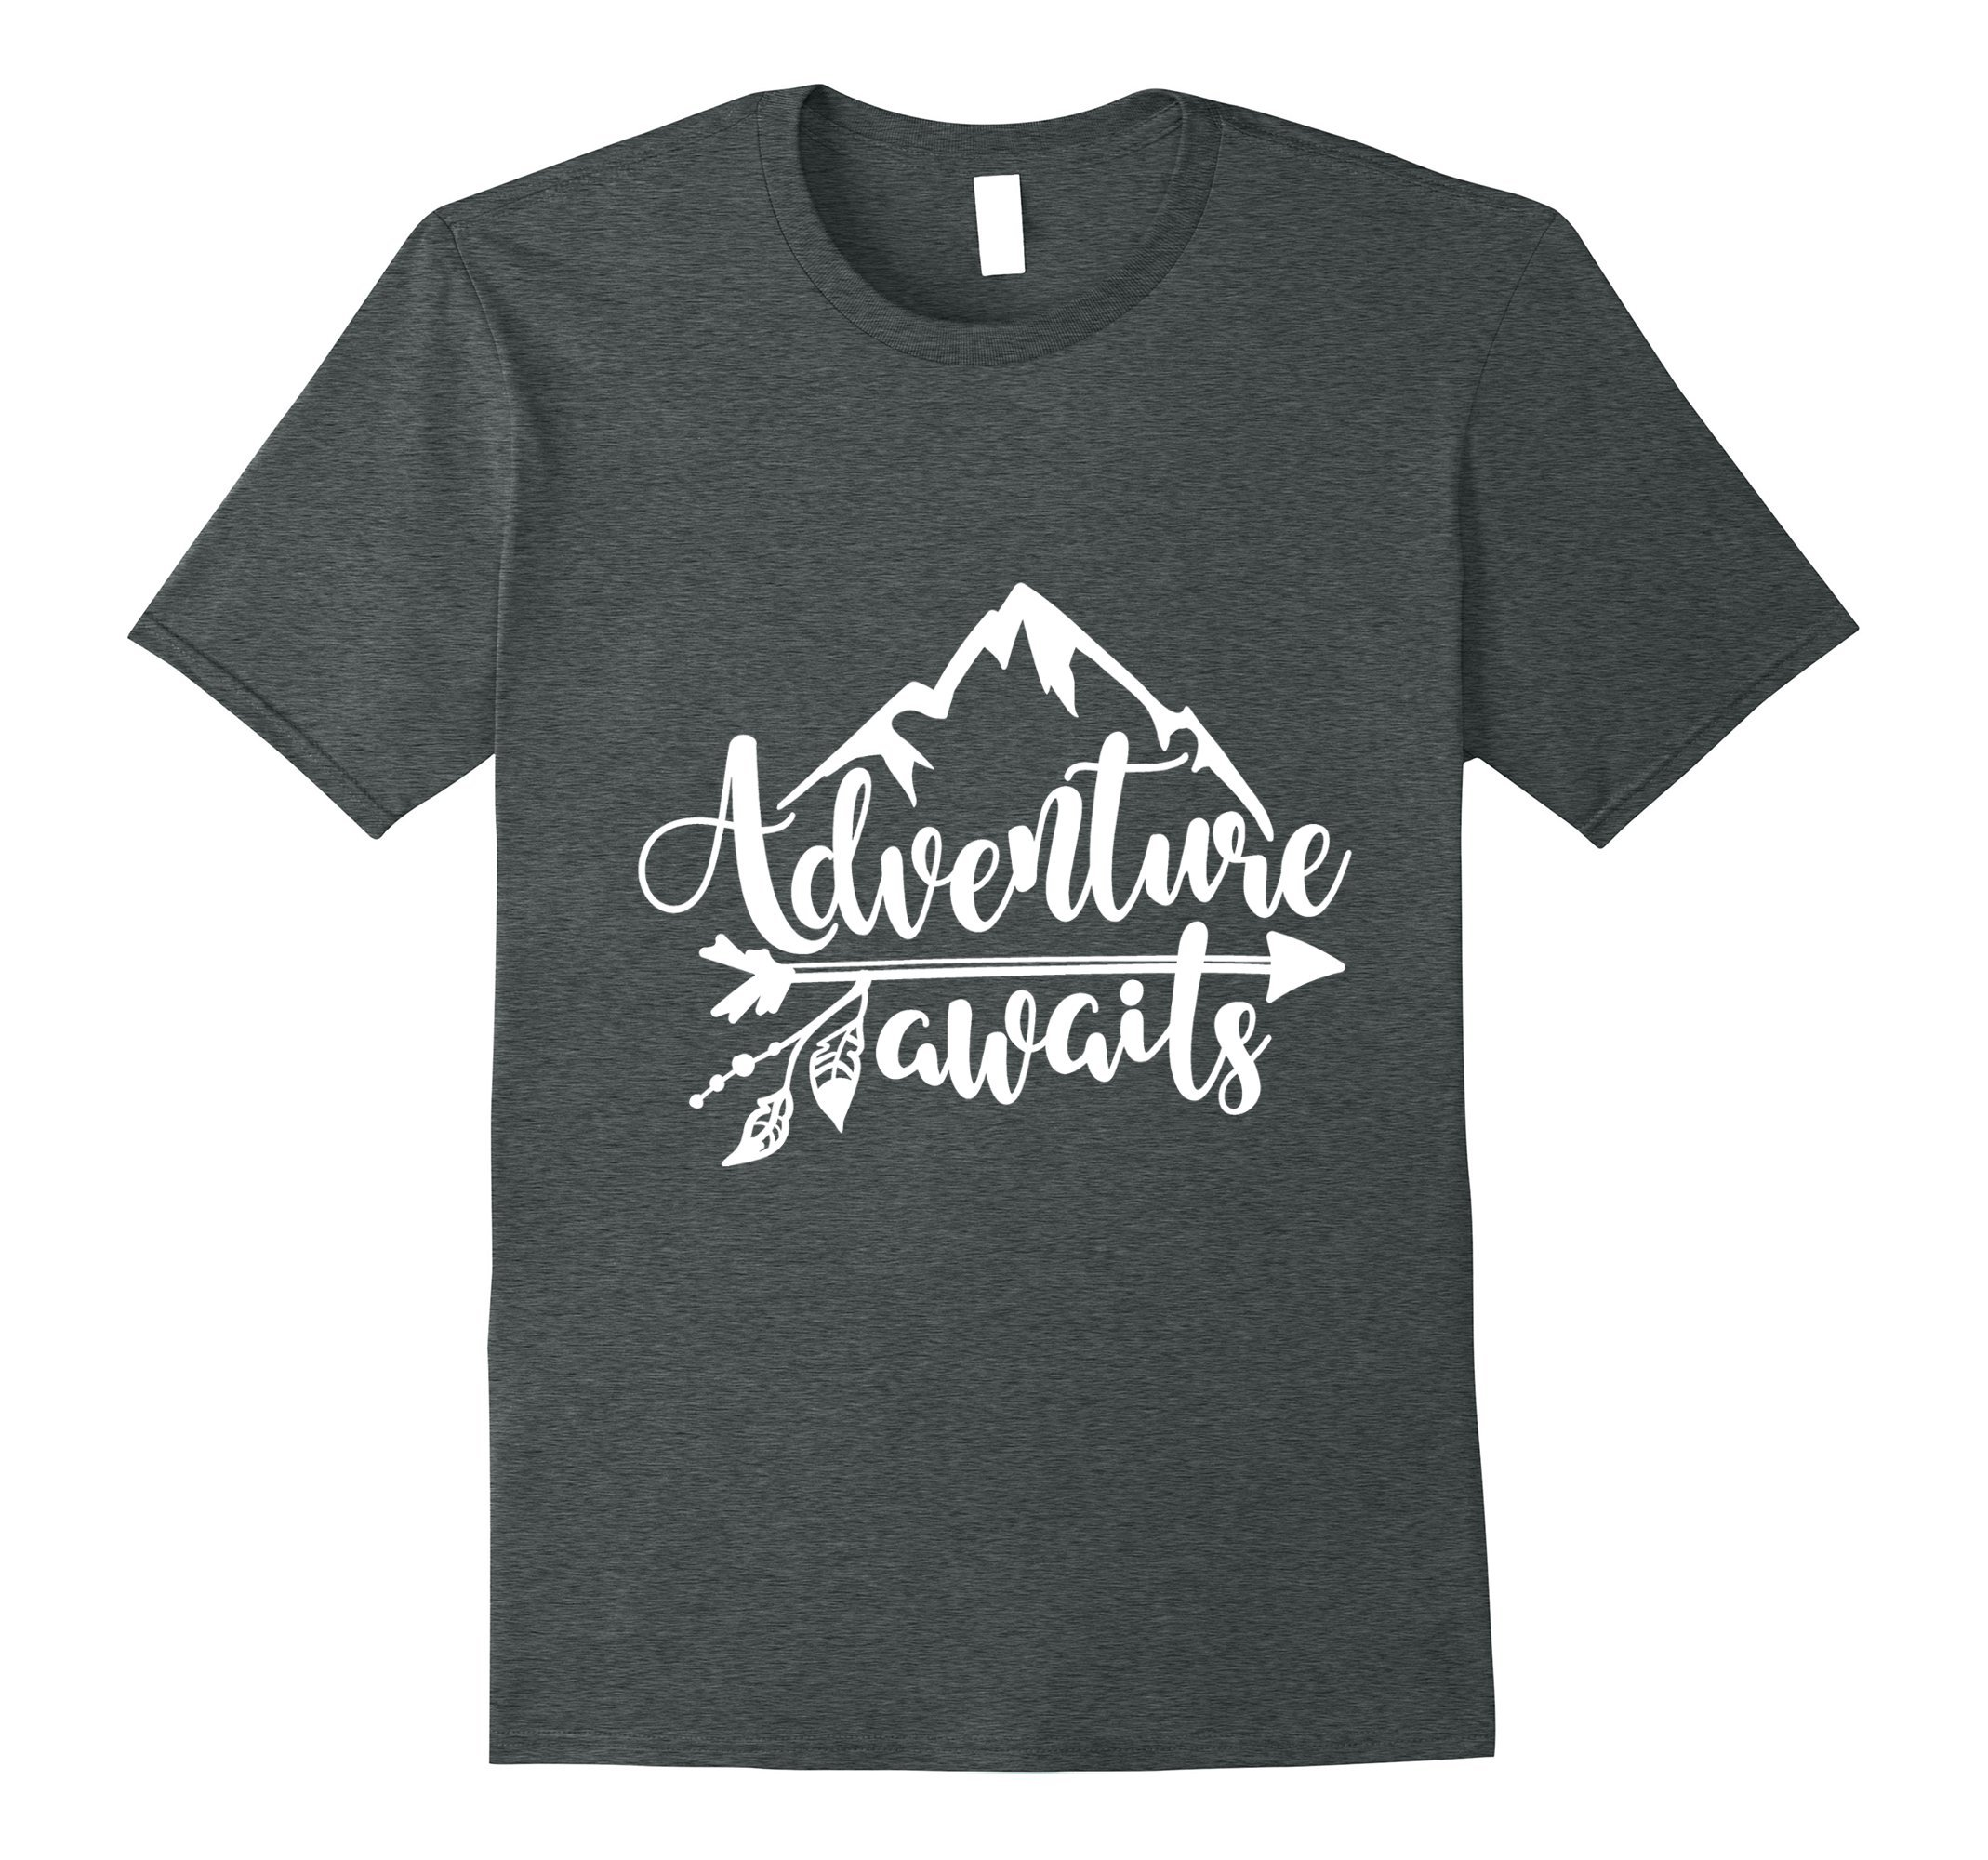 Mens Adventure Awaits - Camping, RV, and Outdoor Travel T-shirt 2XL Dark Heather